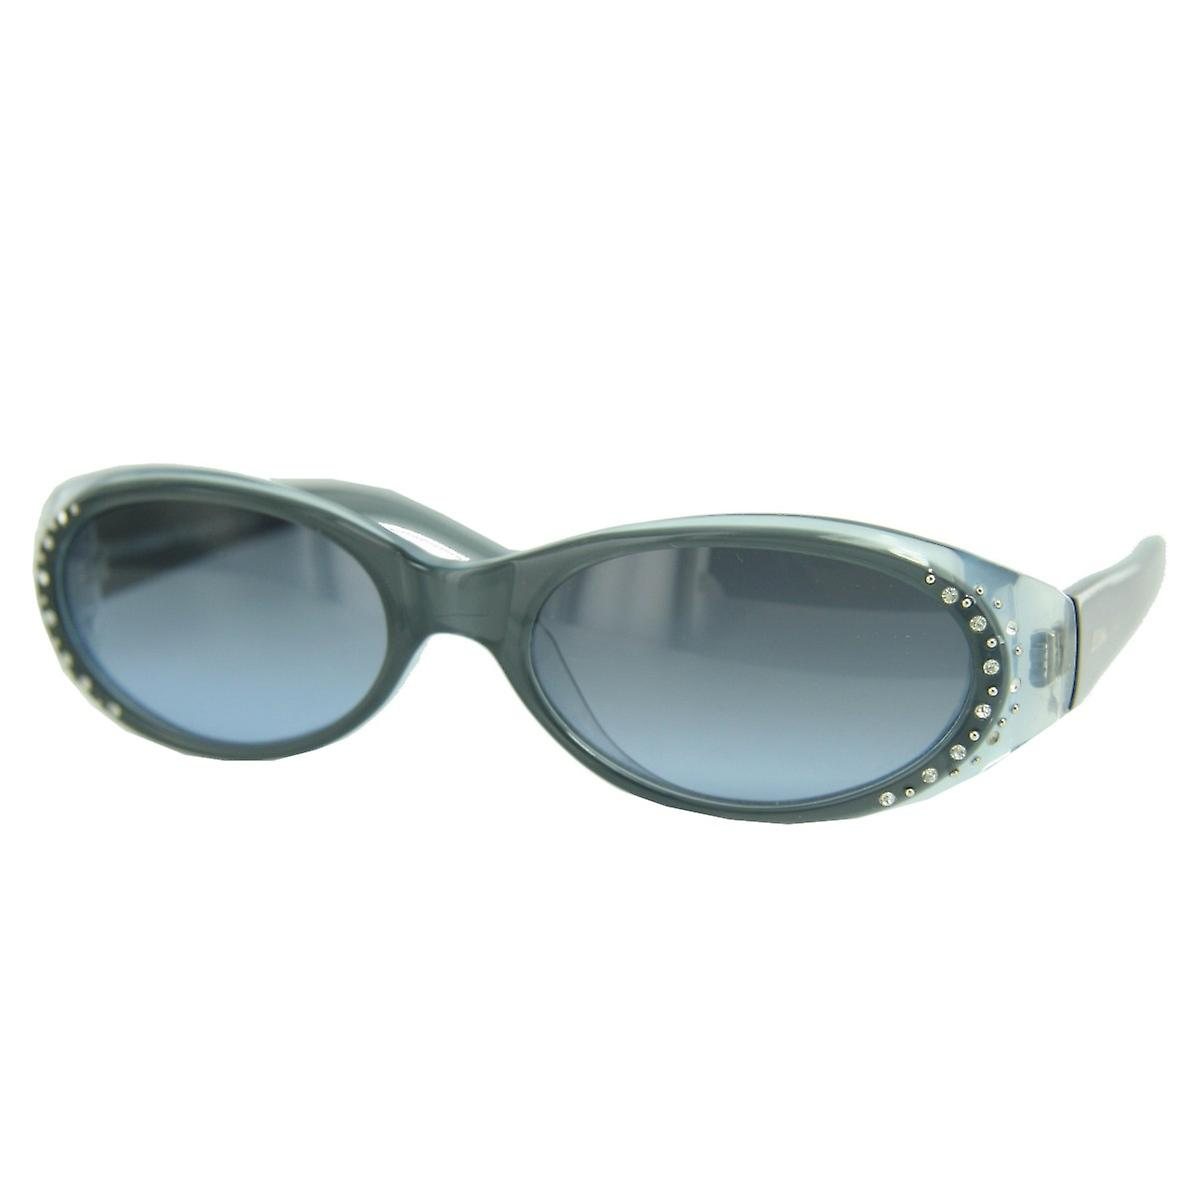 Gerry Weber Sunglasses 7081 C2 Grey Blue